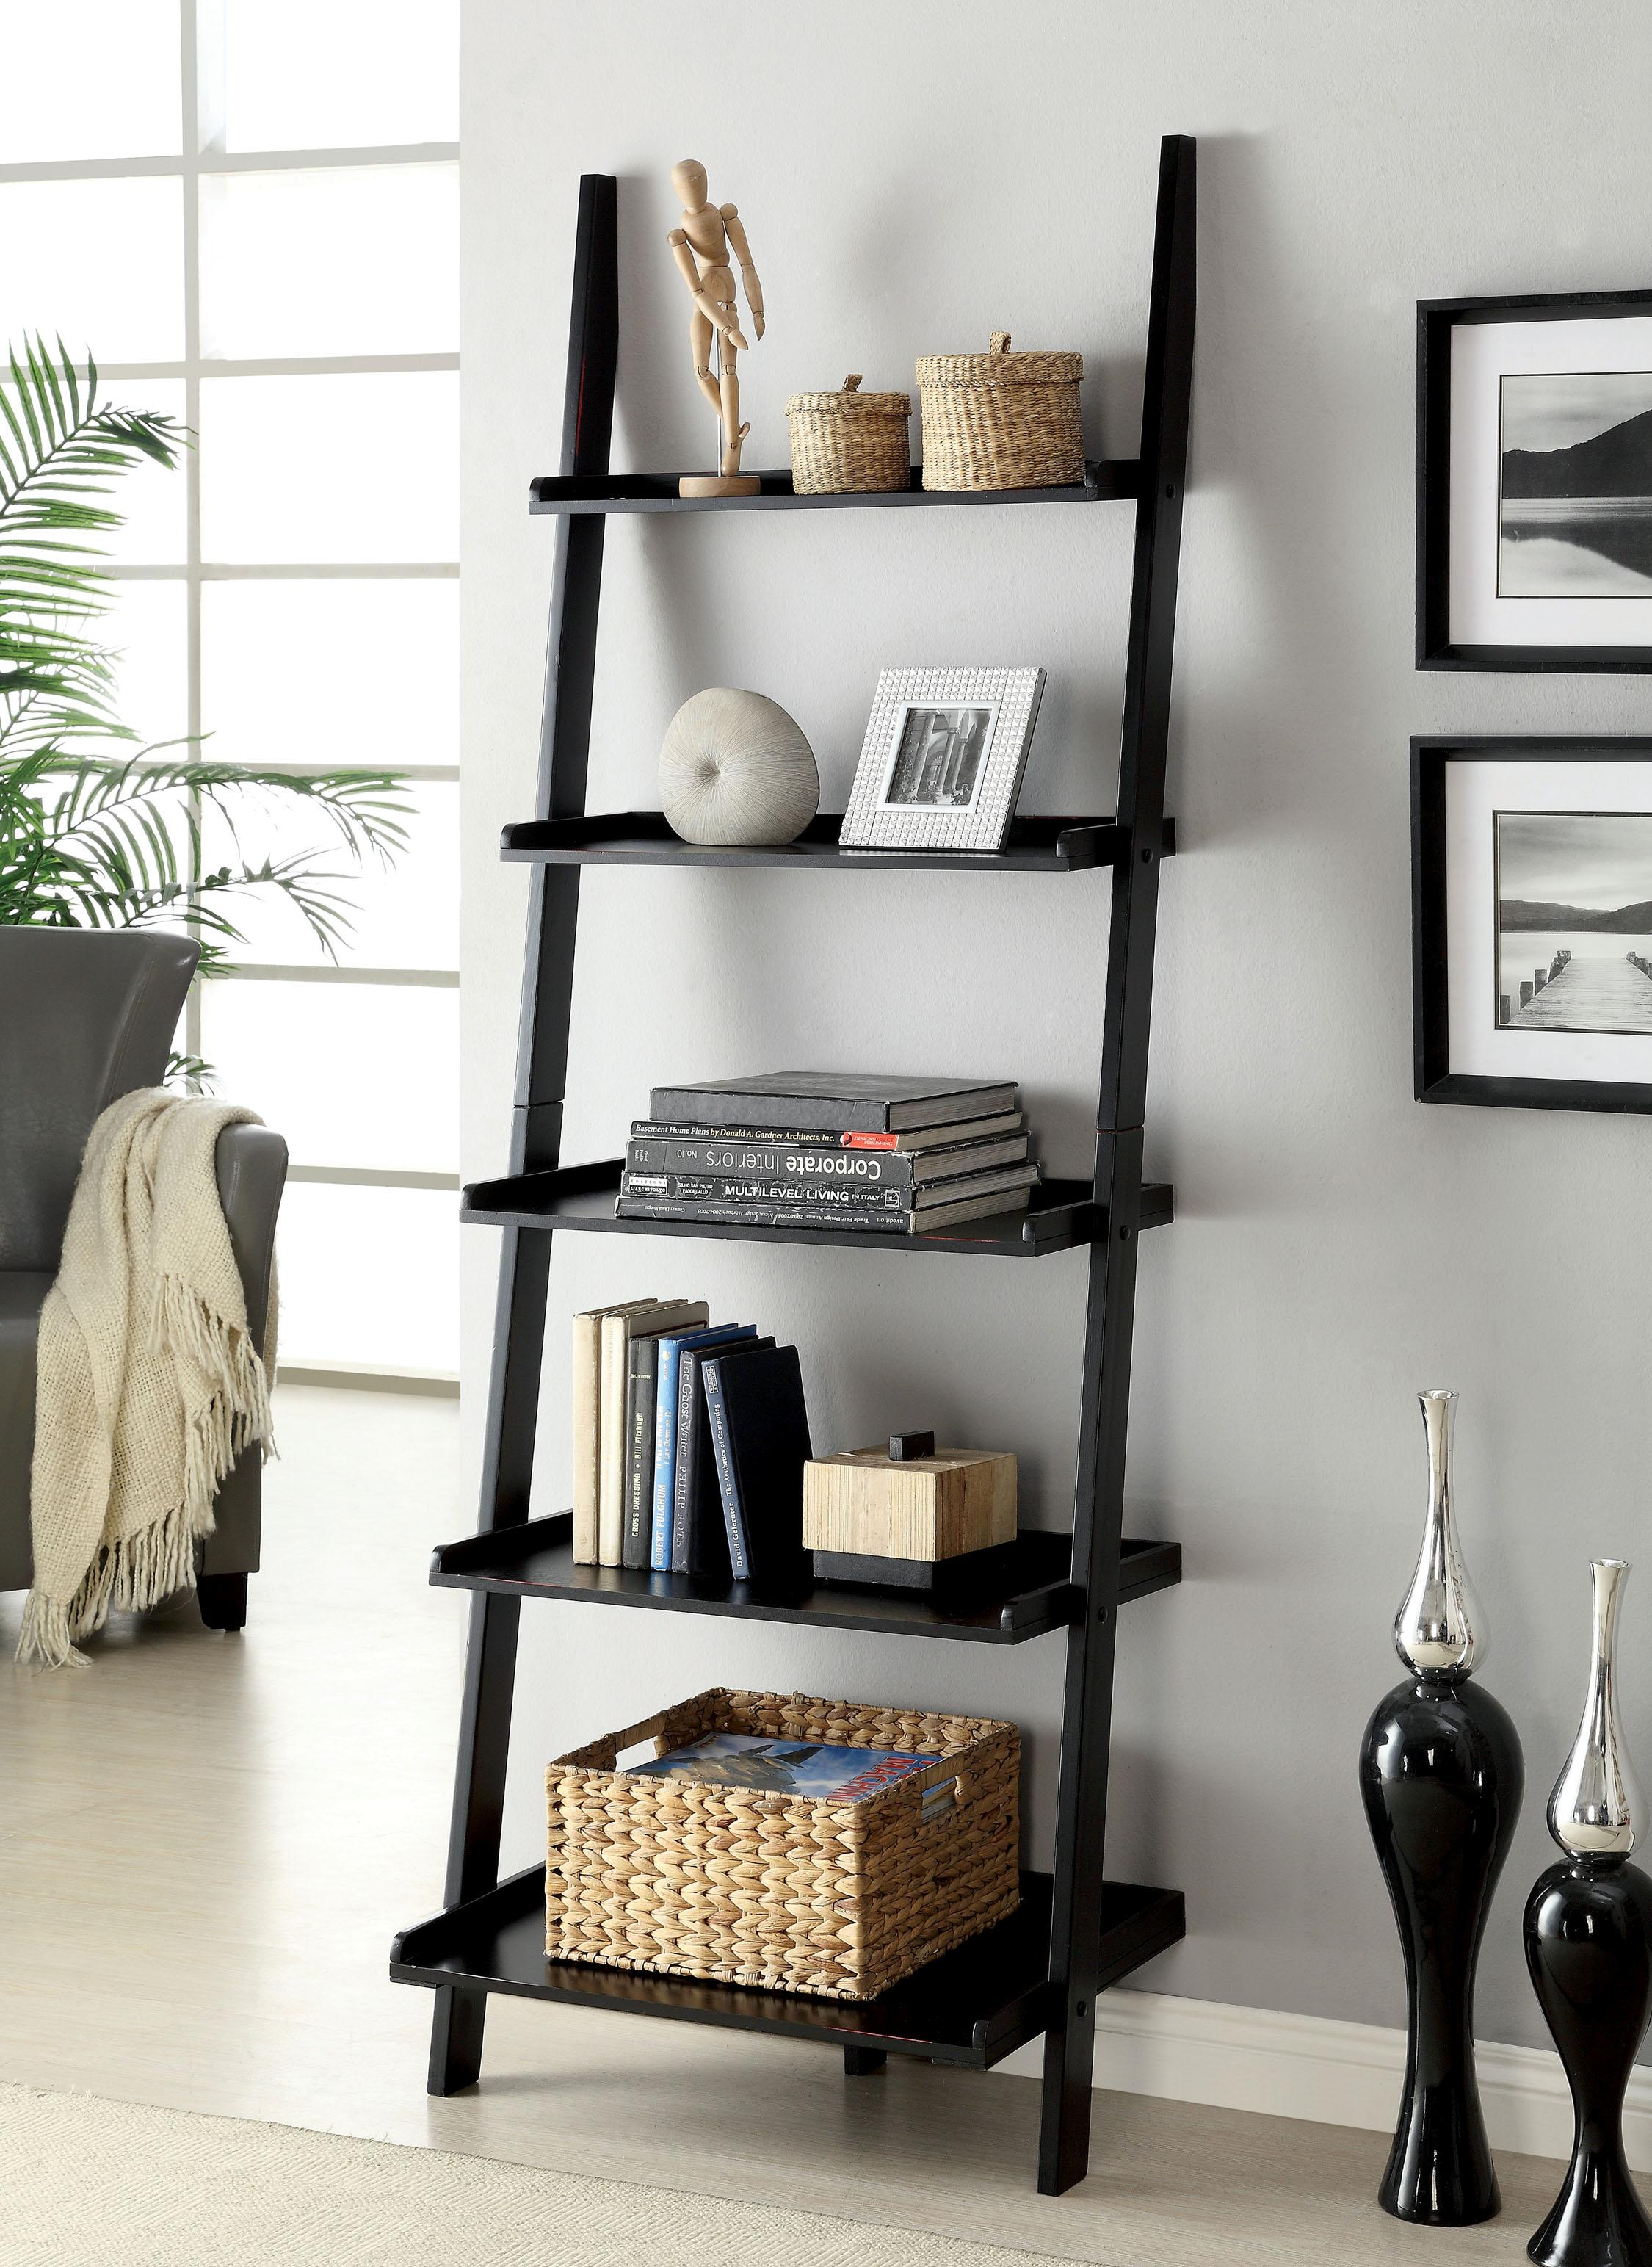 Furniture of America Klaudalie 5-Tier Ladder Style Bookshelf, Black